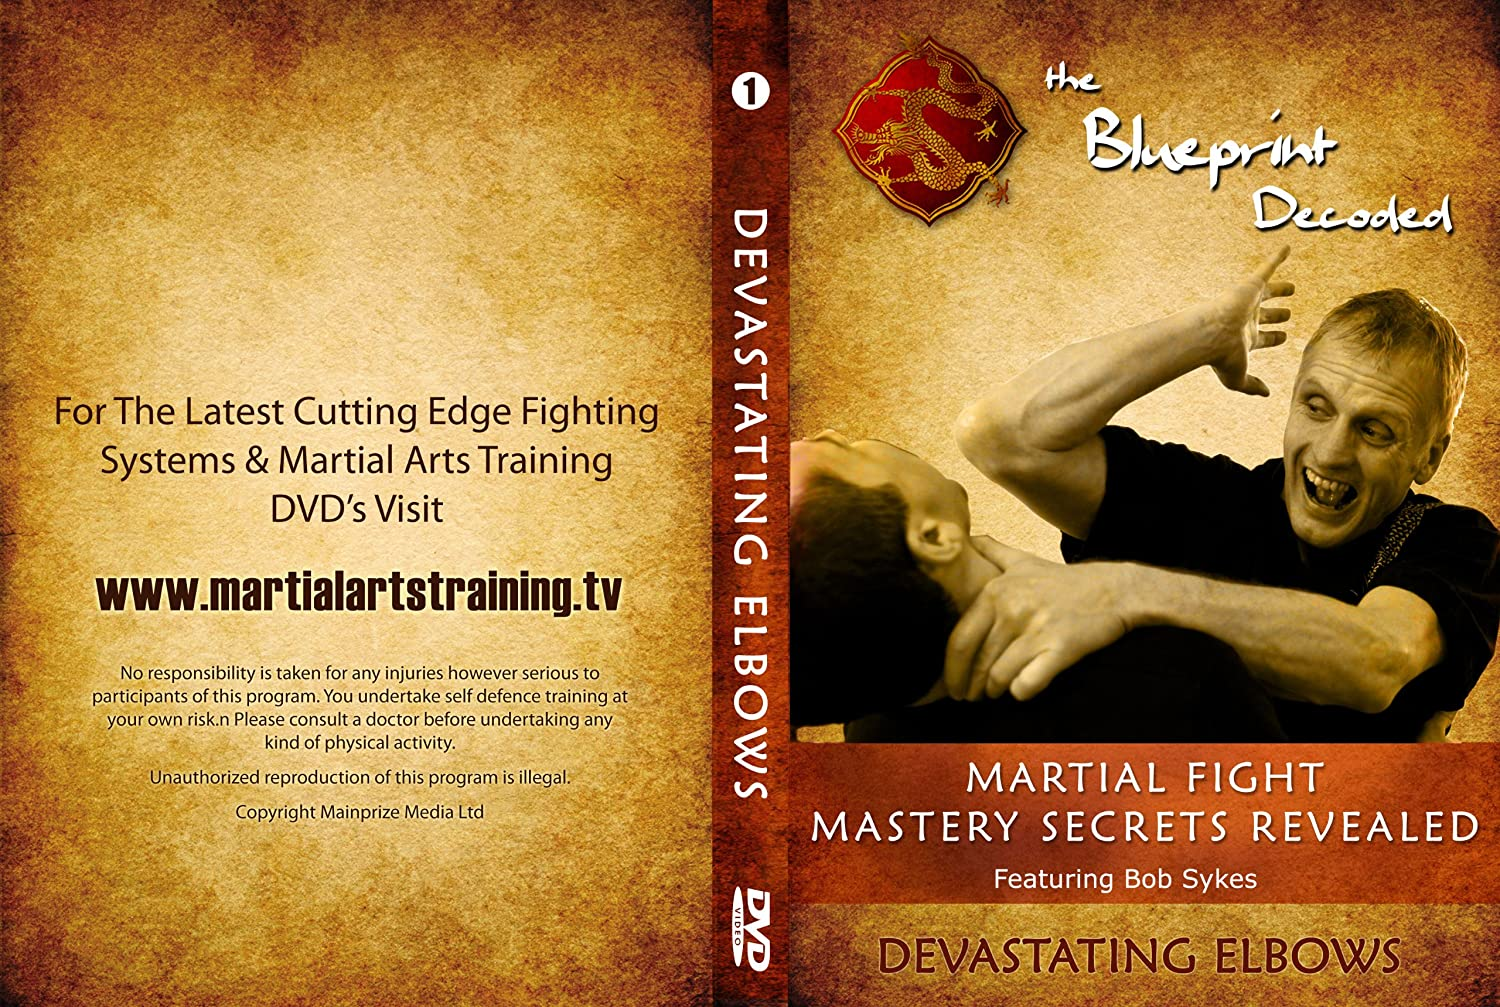 The blueprint decoded boxset martial arts mastery secrets revealed the blueprint decoded boxset martial arts mastery secrets revealed amazon bob sykes lee mainprize dvd blu ray malvernweather Image collections